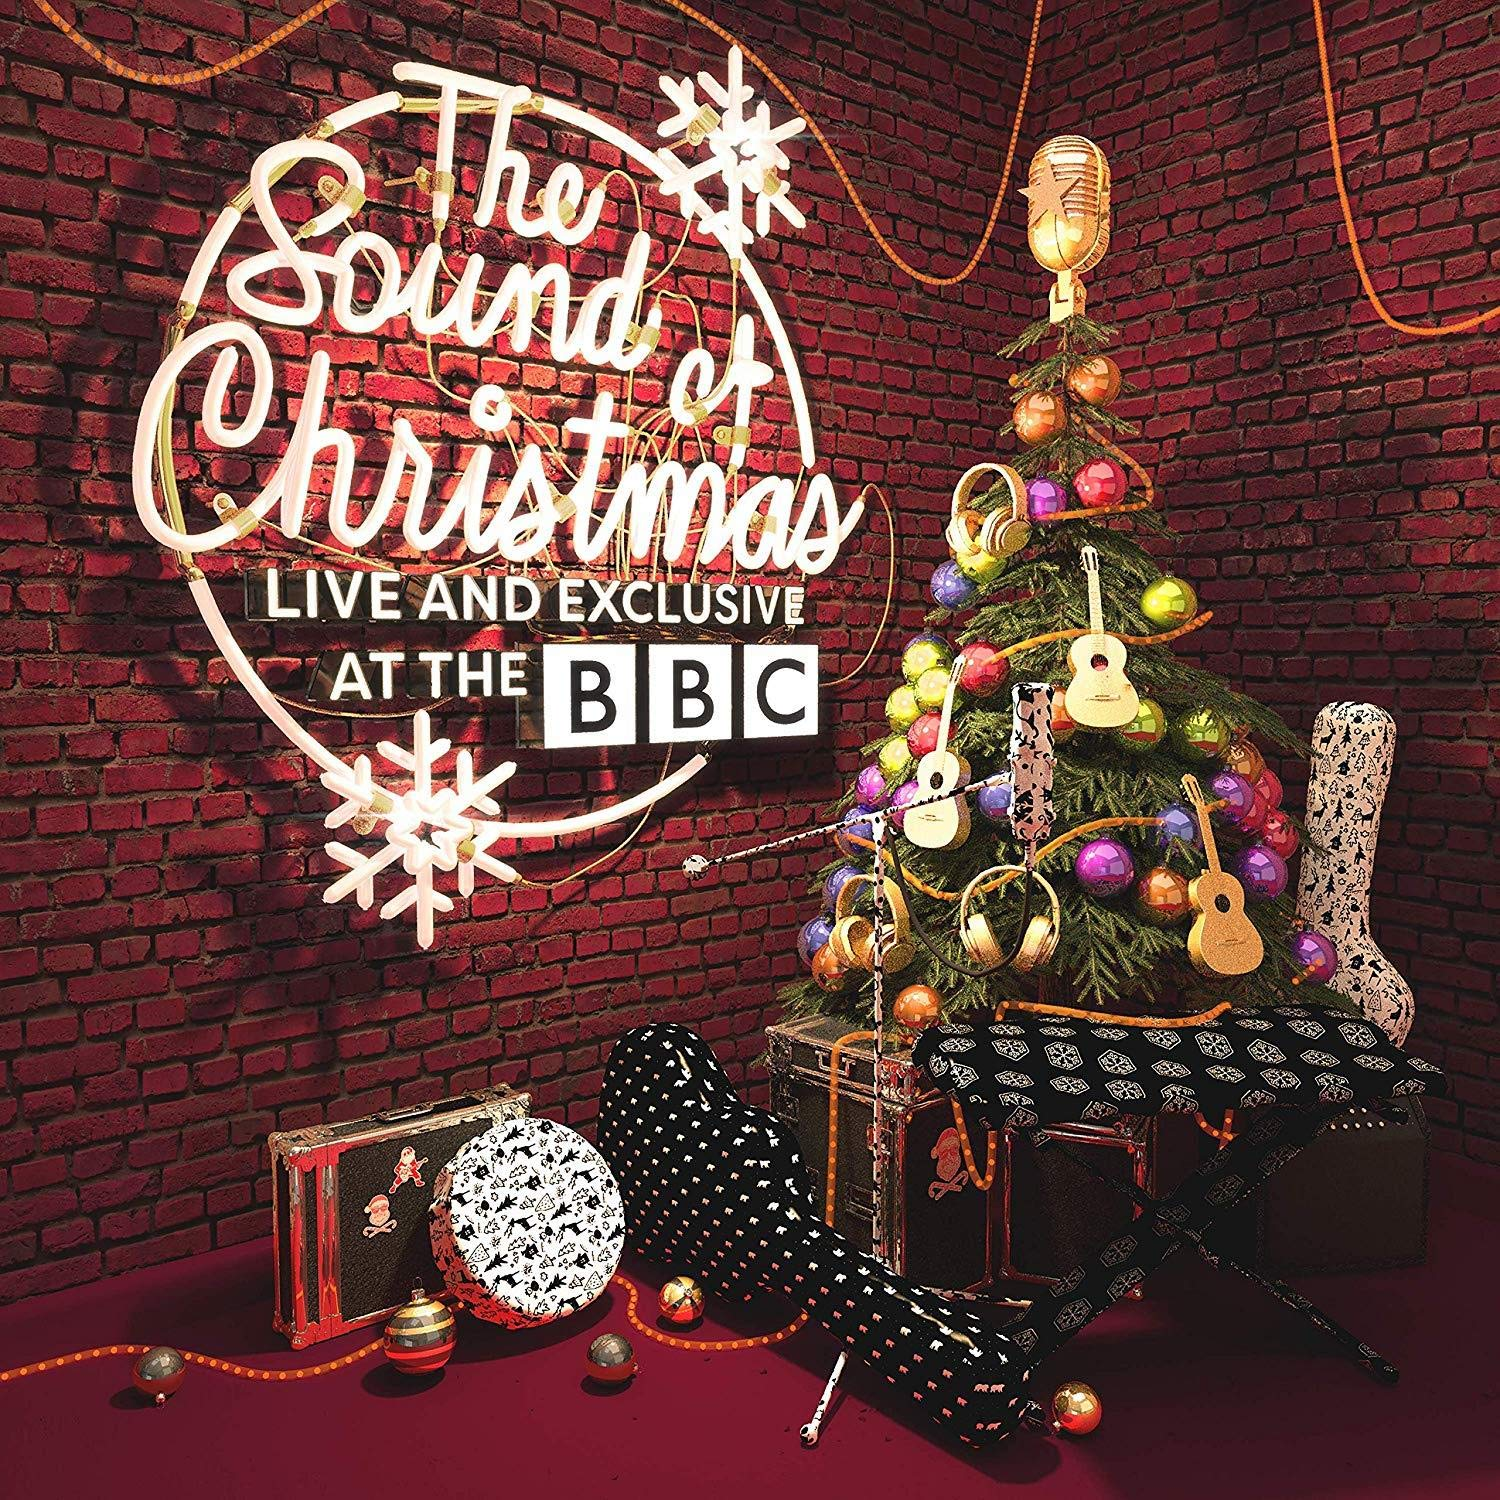 Sound Of Christmas.The Sound Of Christmas Live Exclusive At The Bbc